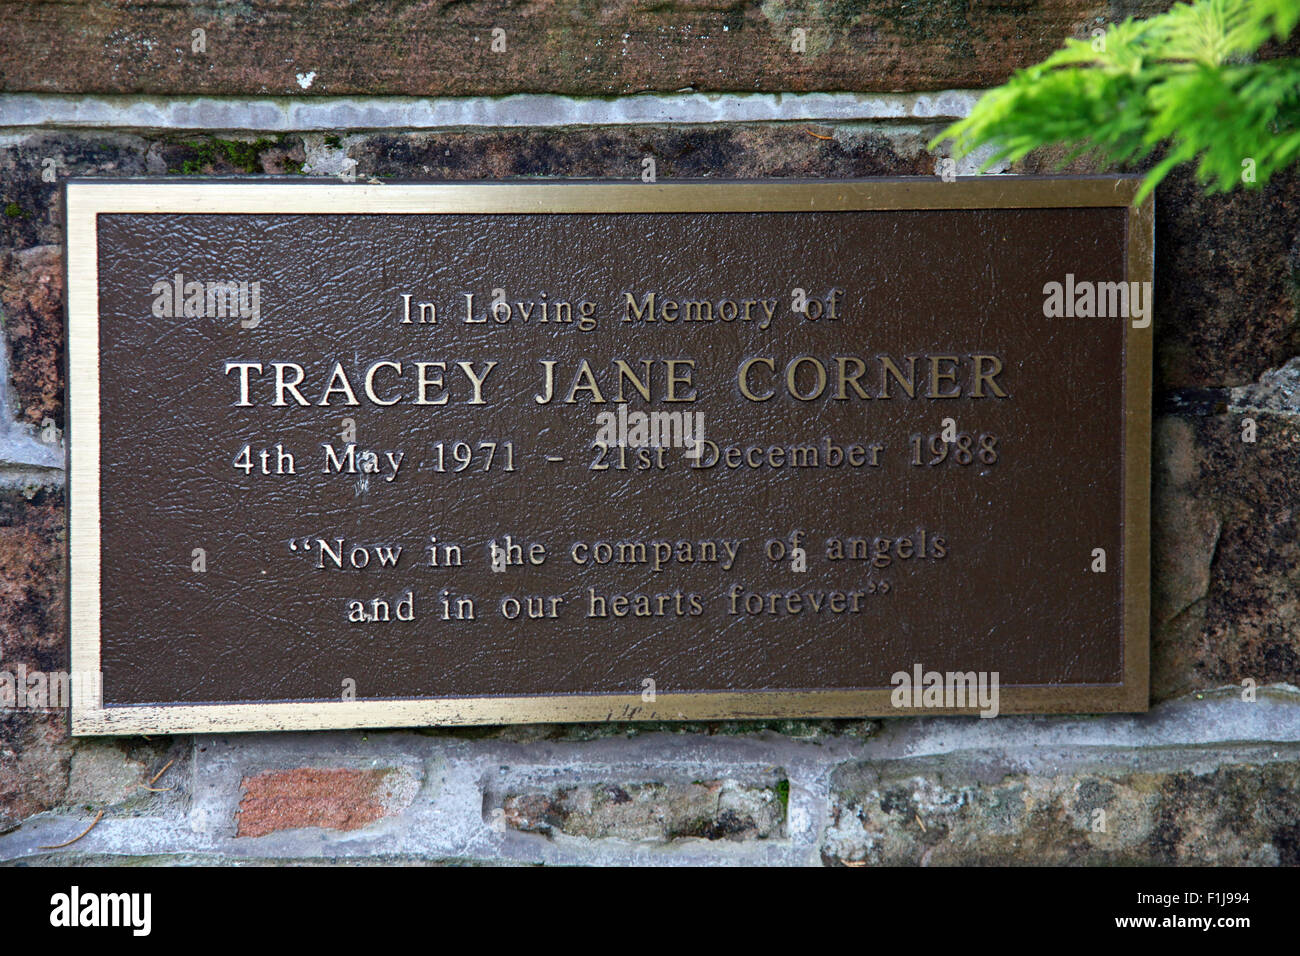 Lockerbie PanAm103 In Rememberance Memorial Tracey Jane Corner,Scotland - Stock Image